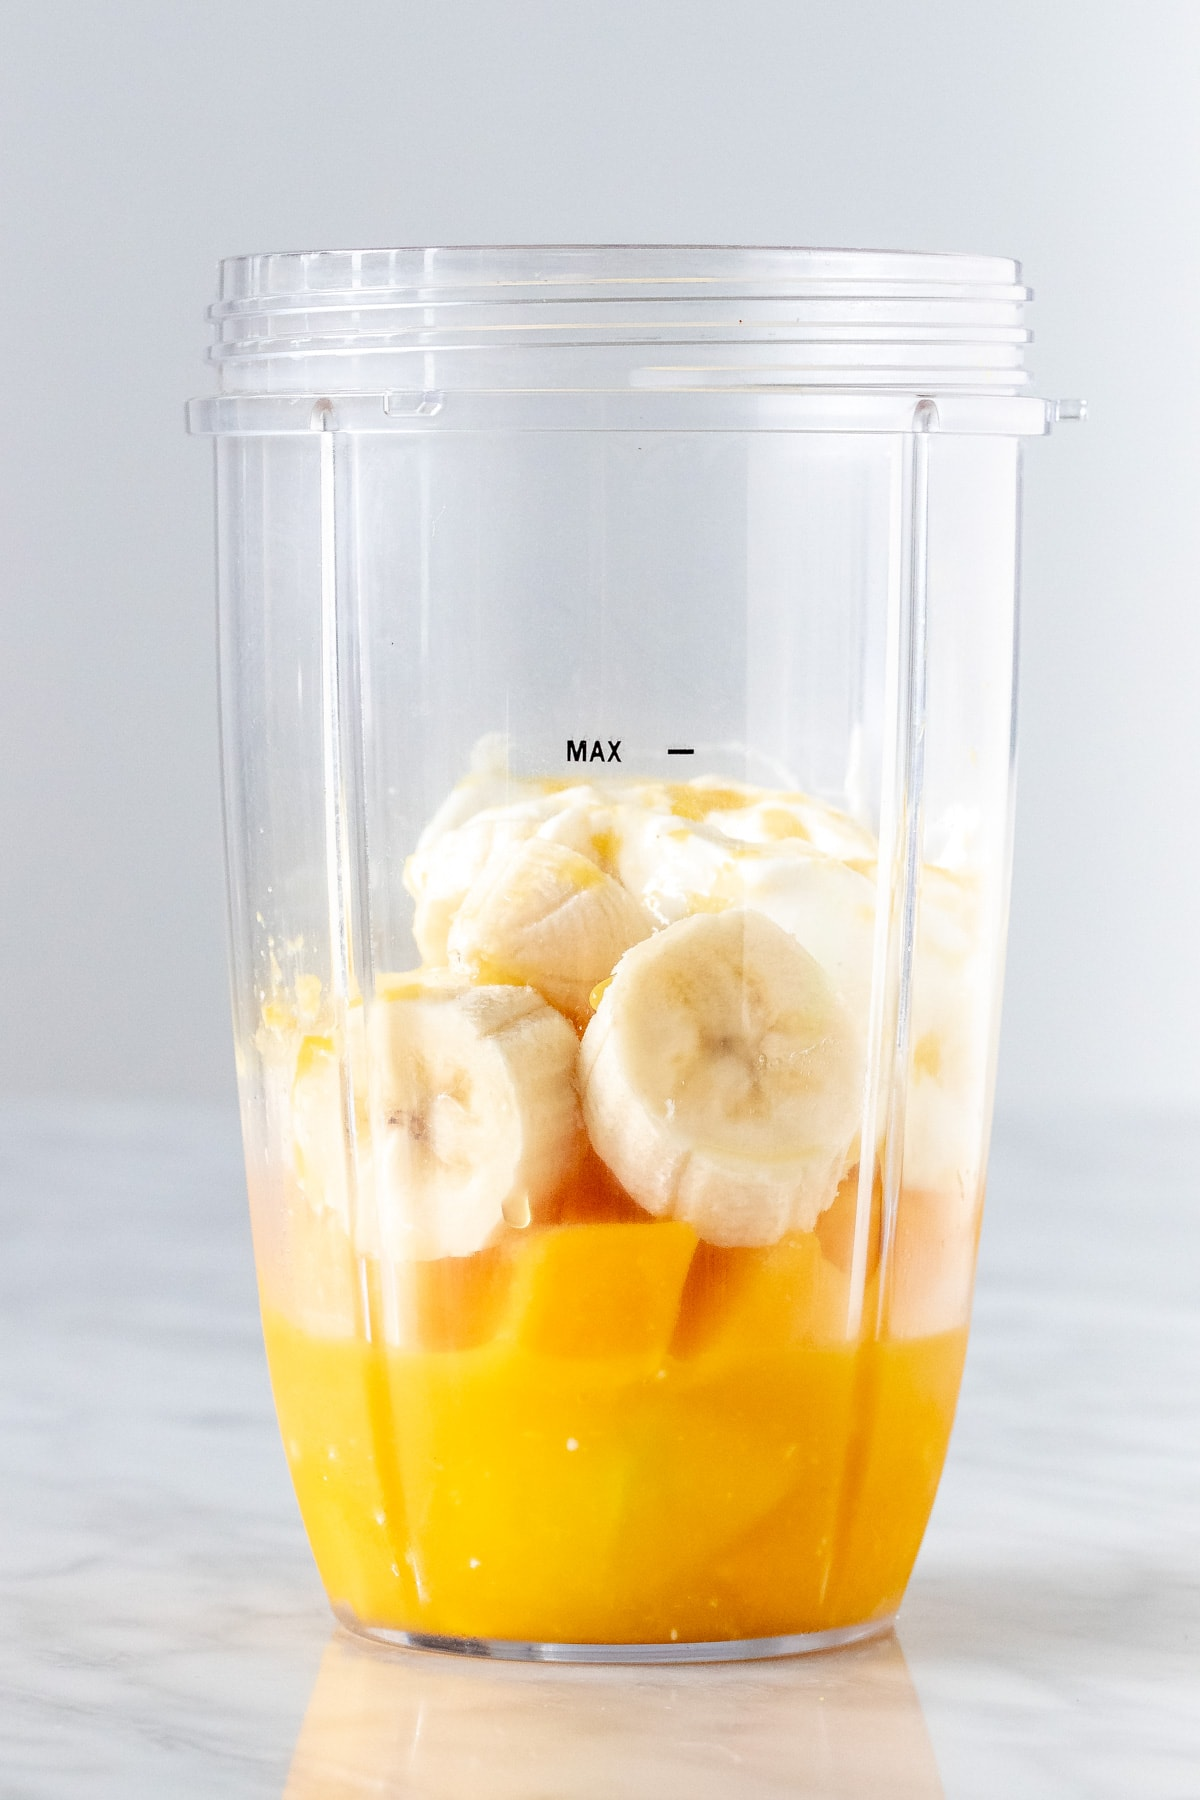 Blender CONTAINER WITH ORANGE JUICE, MANGO AND BANANA